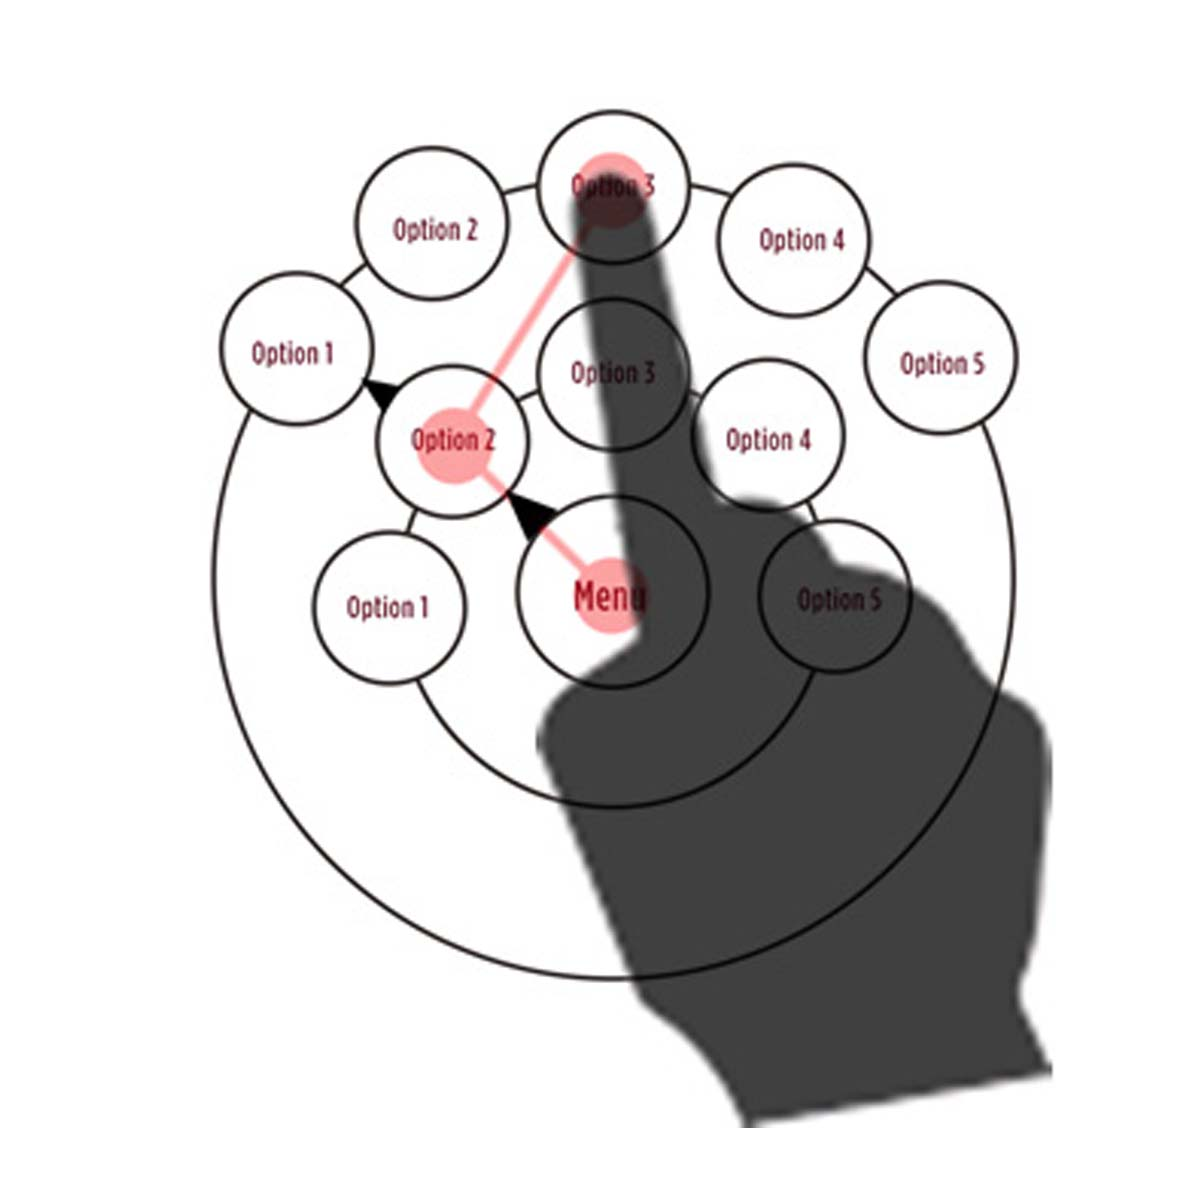 Radial Menu System for Touch Screens